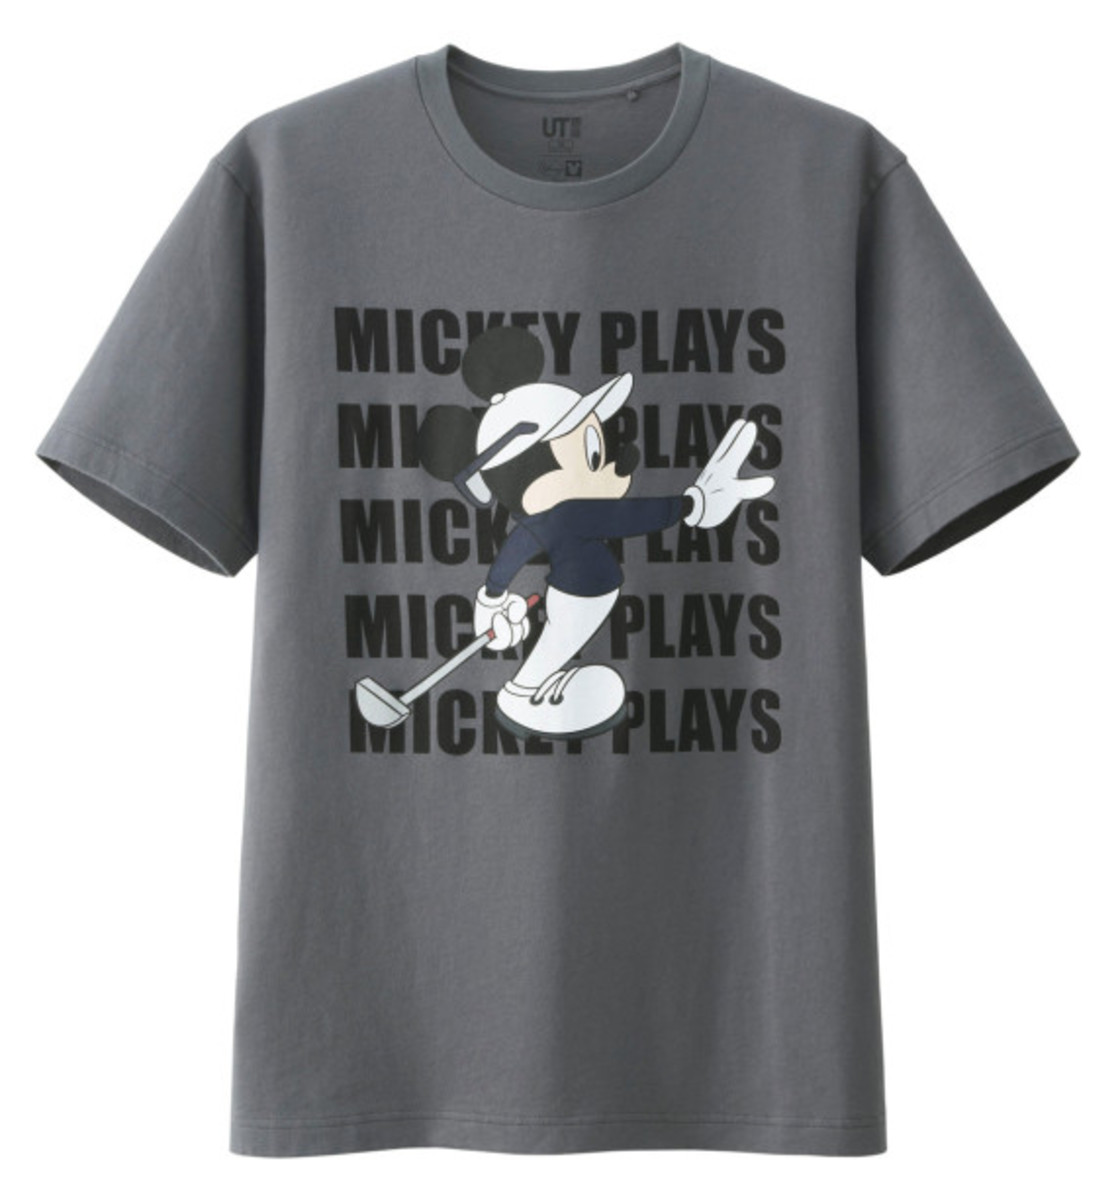 disney-uniqlo-mickey-plays-t-shirt-collection-06